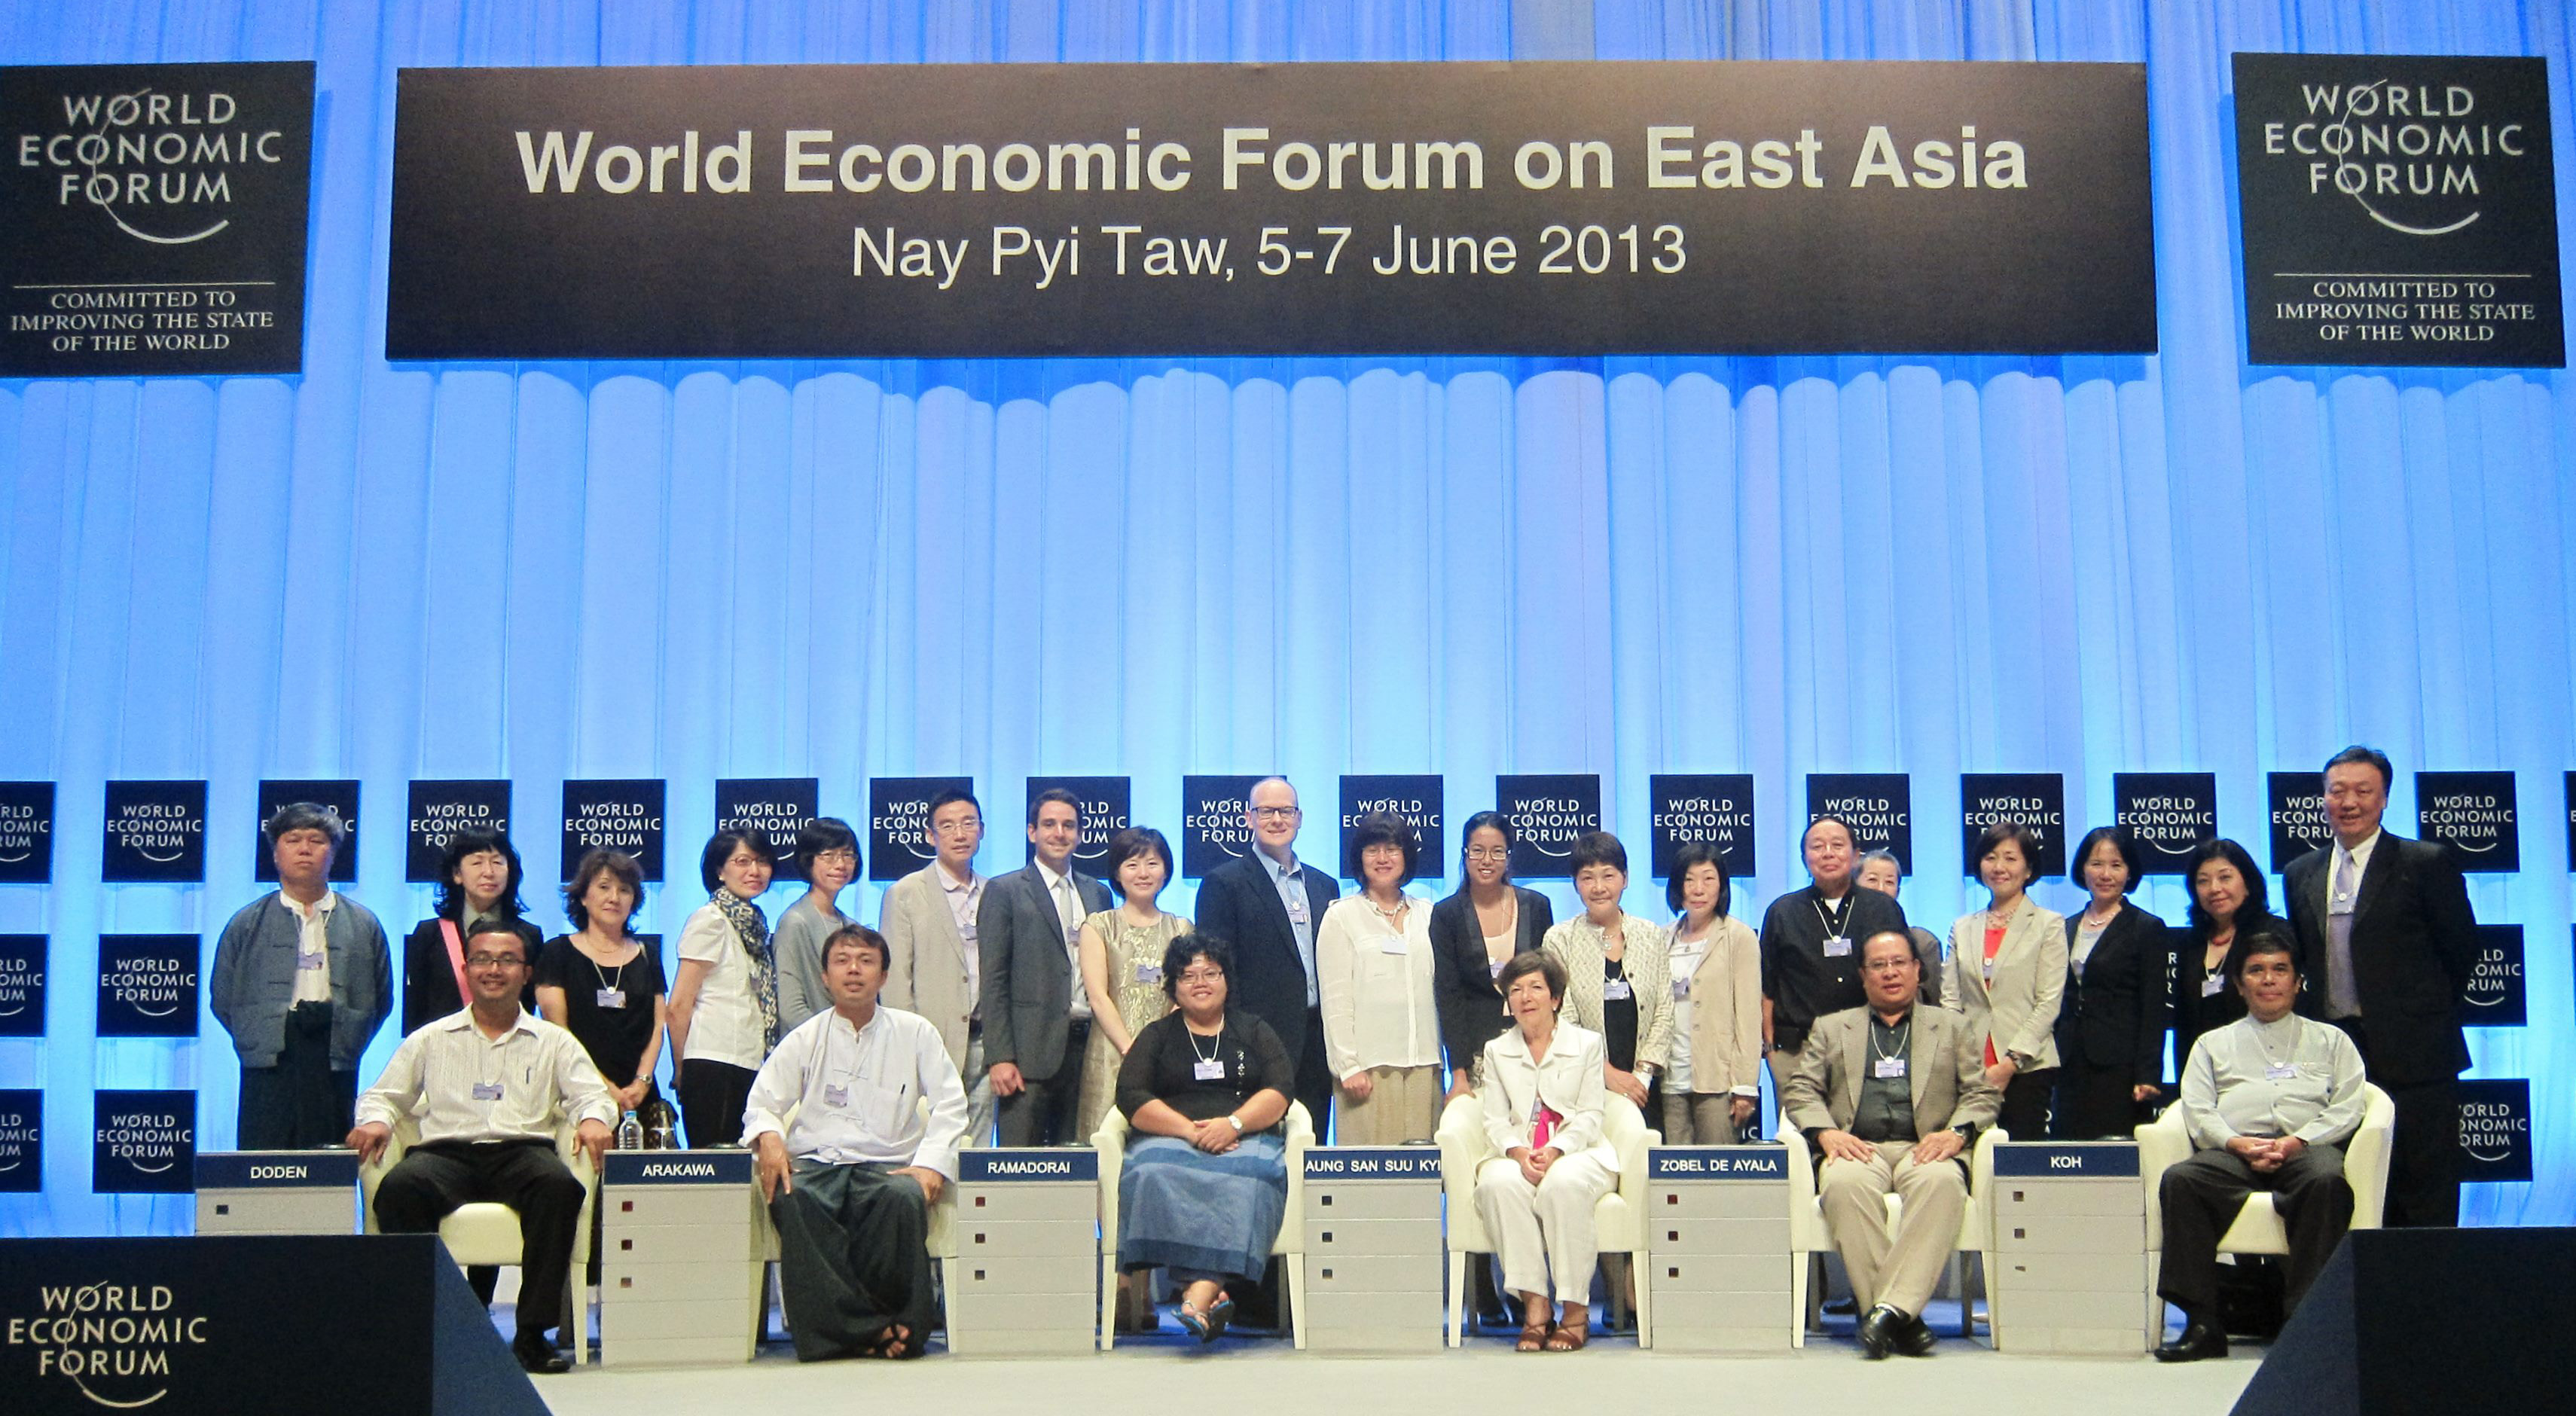 The CIAP team of 24 interpreters at the World Economic Forum in Nay Pyi Taw, Myanmar in June 2013.